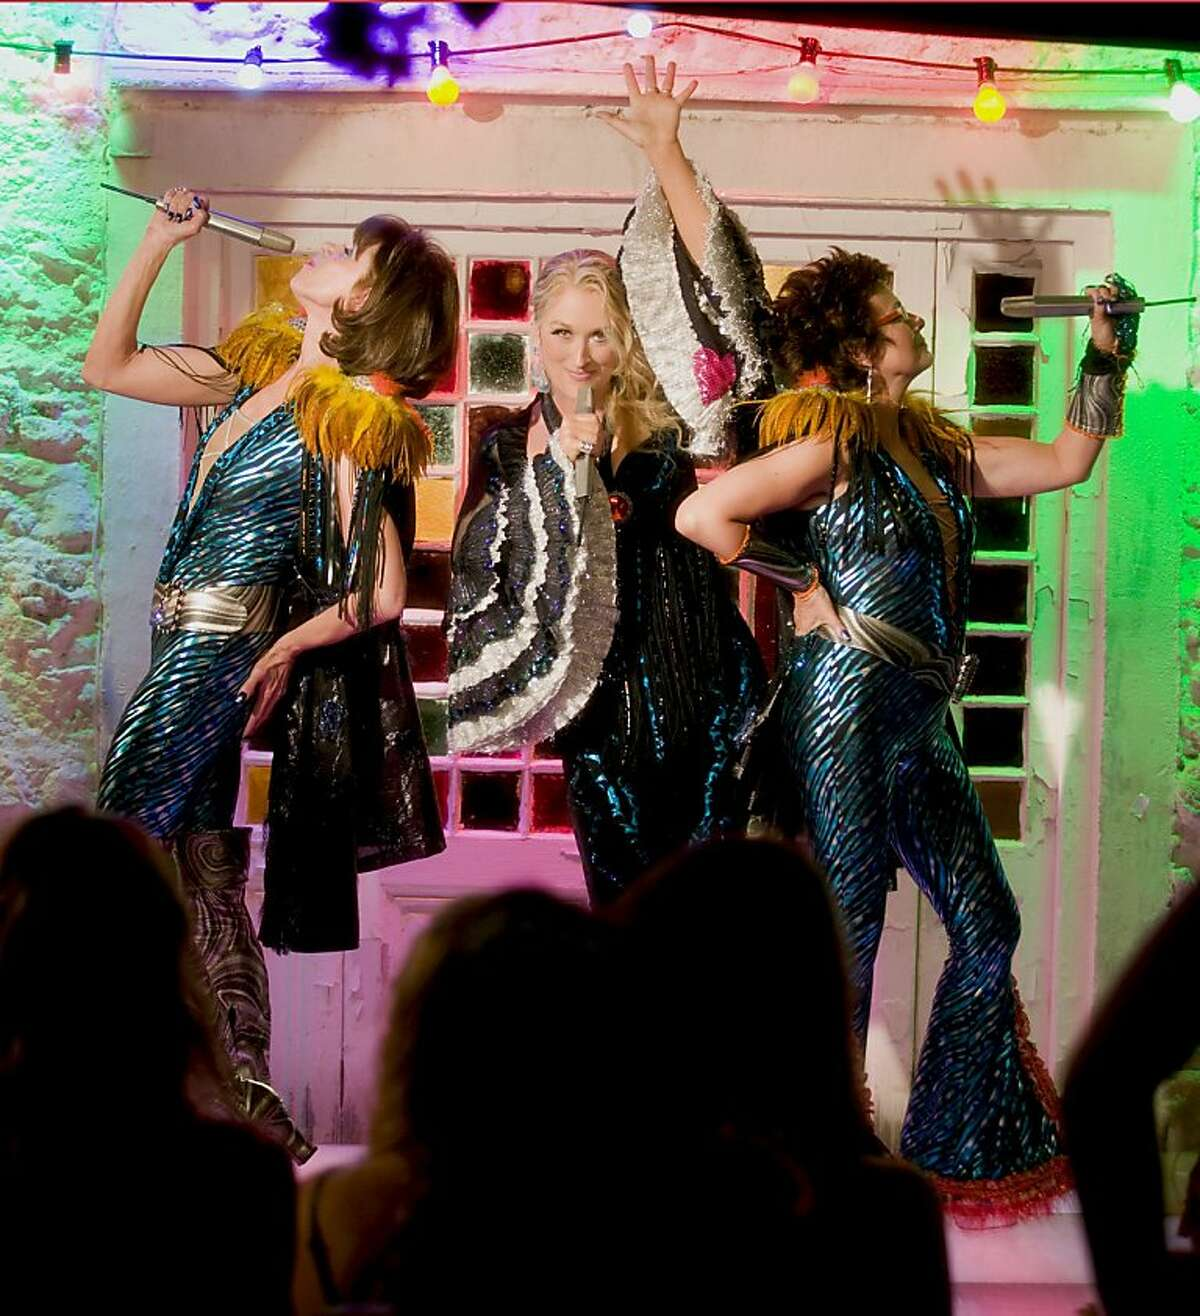 Donna and The Dynamos-(L to R) Tanya Chesham-Leigh (CHRISTINE BARANSKI), Donna Sheridan (MERYL STREEP) and Rosie Rice (JULIE WALTERS)-perform in the musical romantic comedy Mamma Mia! Credit: Peter Mountain